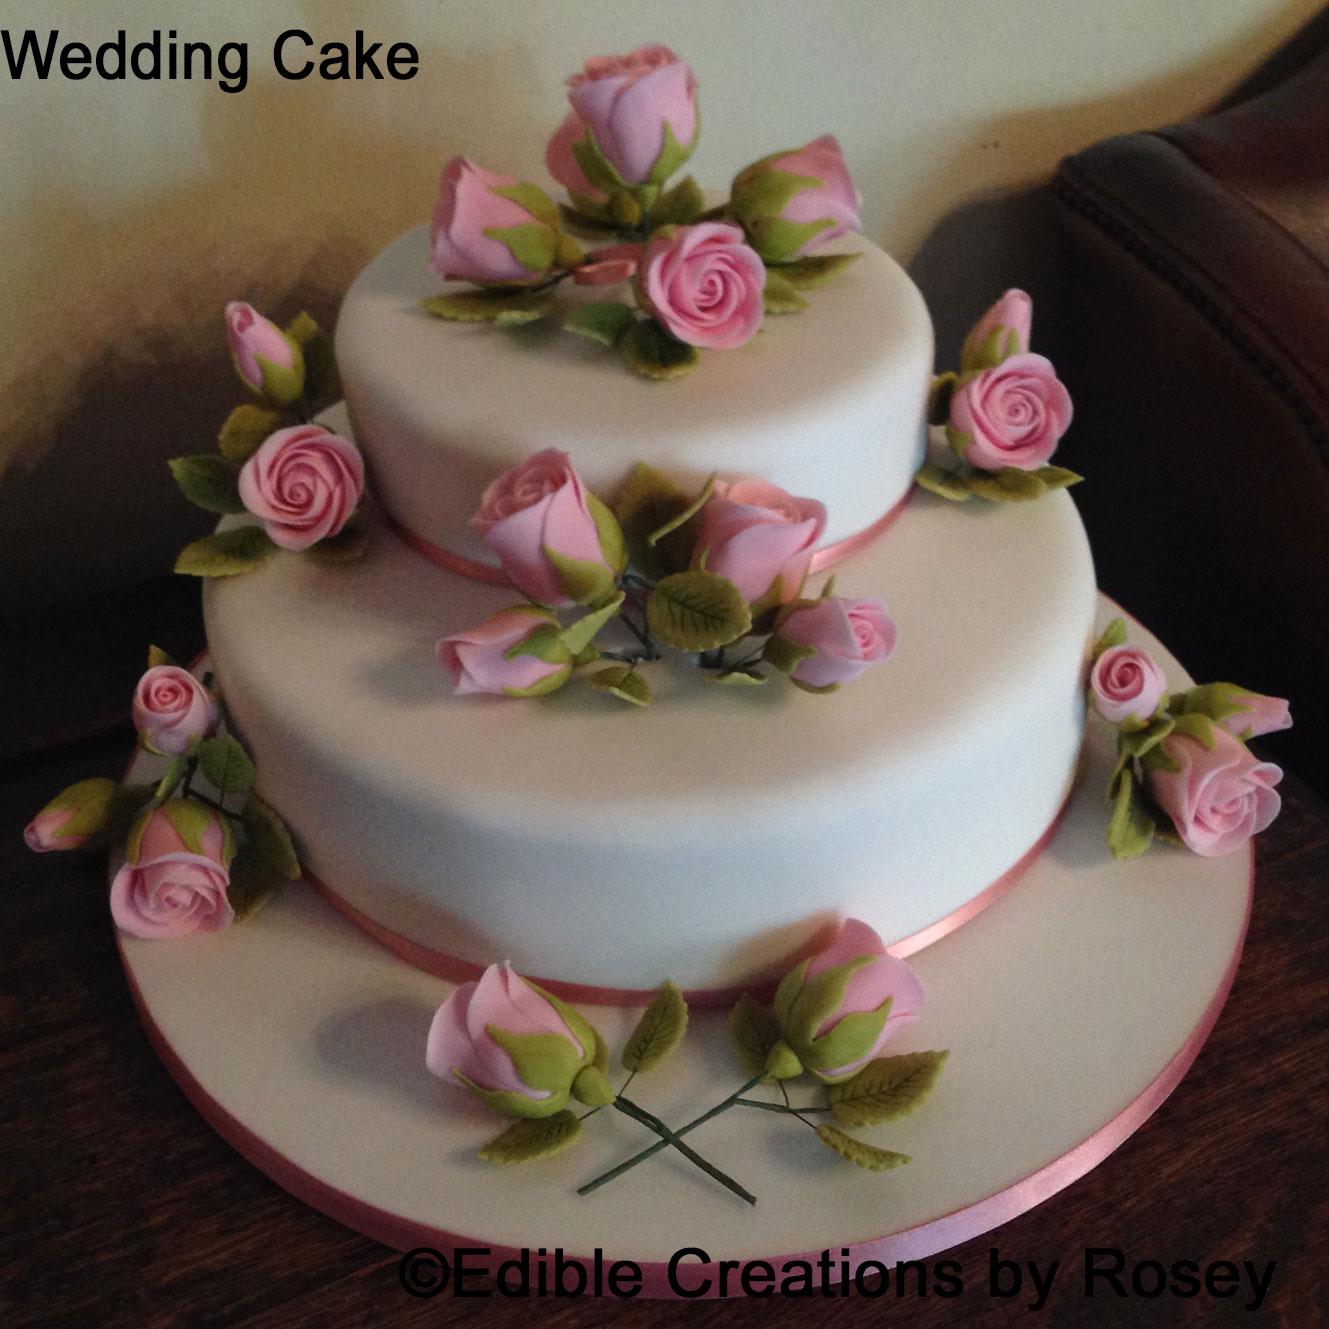 morrisons wedding cakes uk reviews on edible creations by rosey 17538